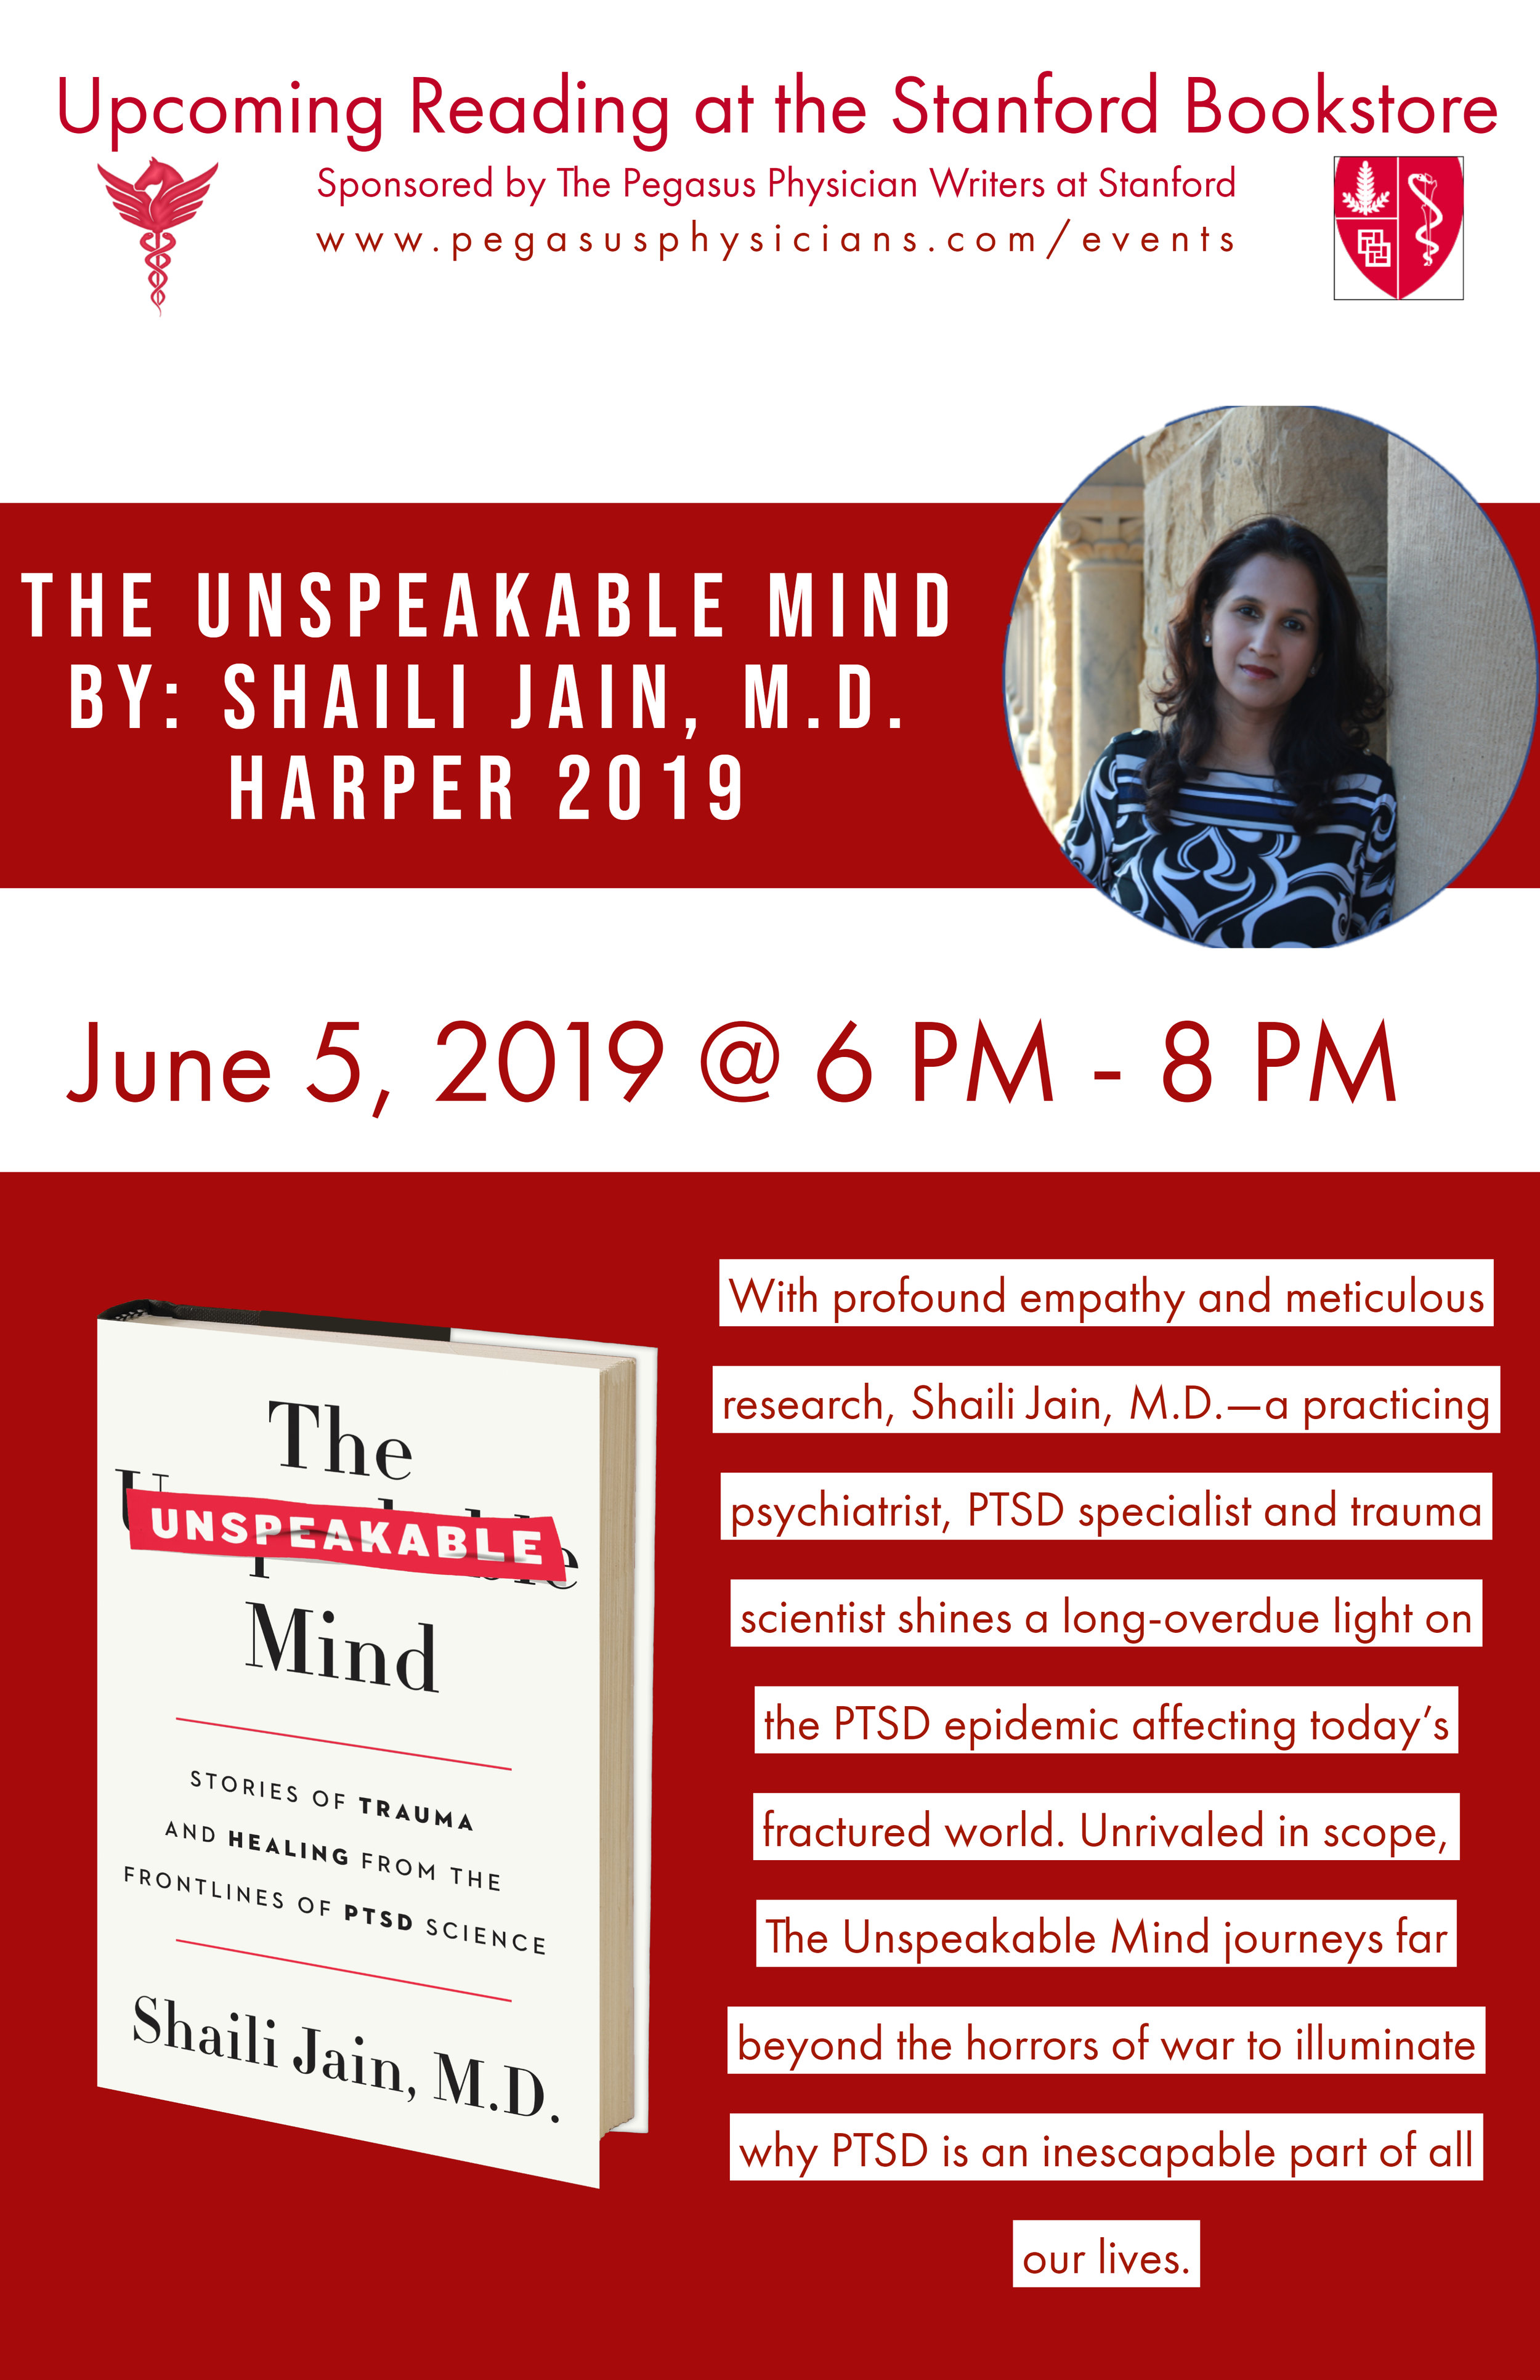 Shaili Jain Bookstore Reading_May 29.jpg